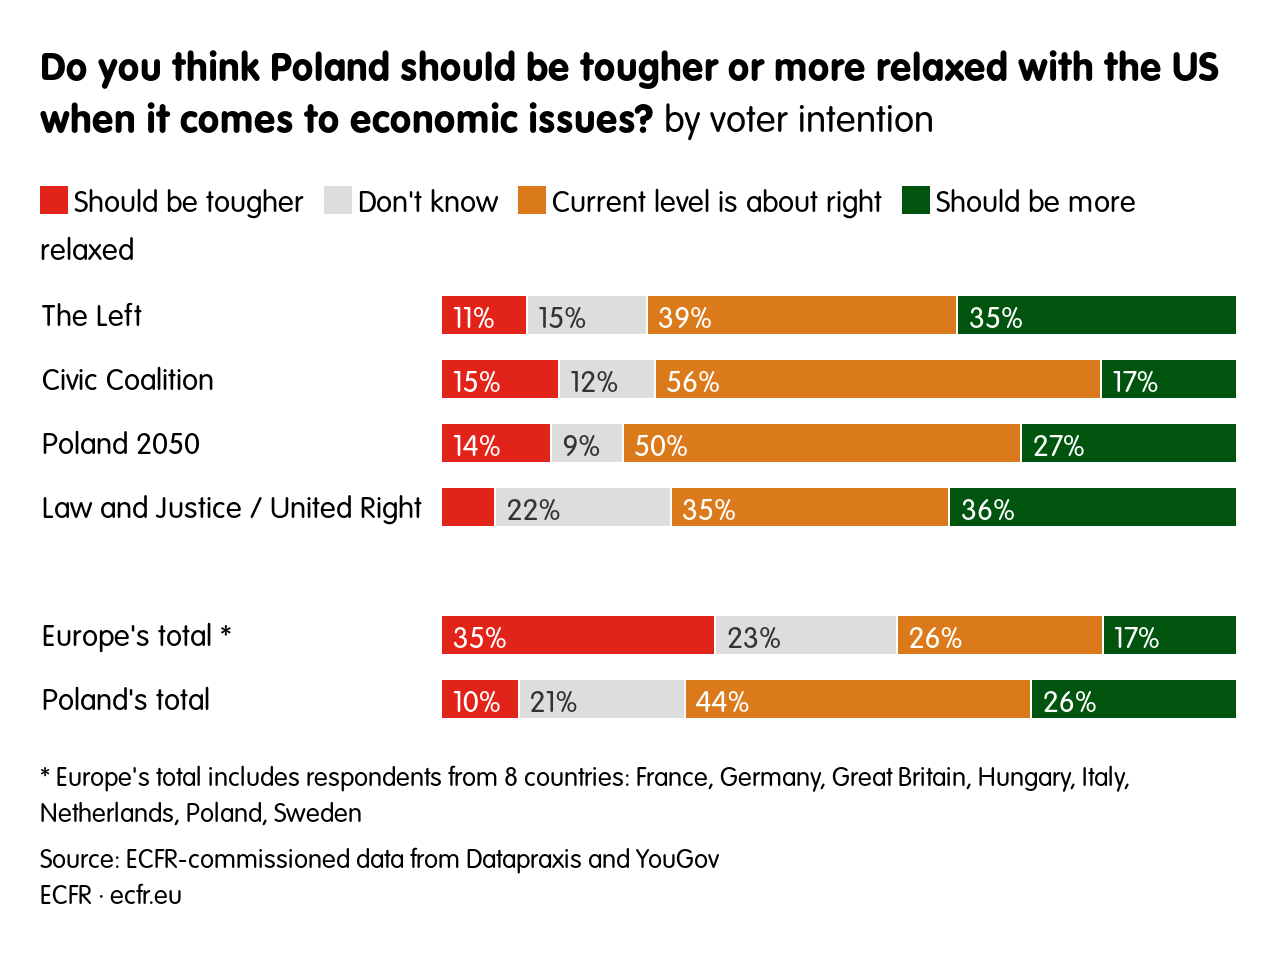 Do you think Poland  should be tougher or more relaxed with the US when it comes to economic issues?